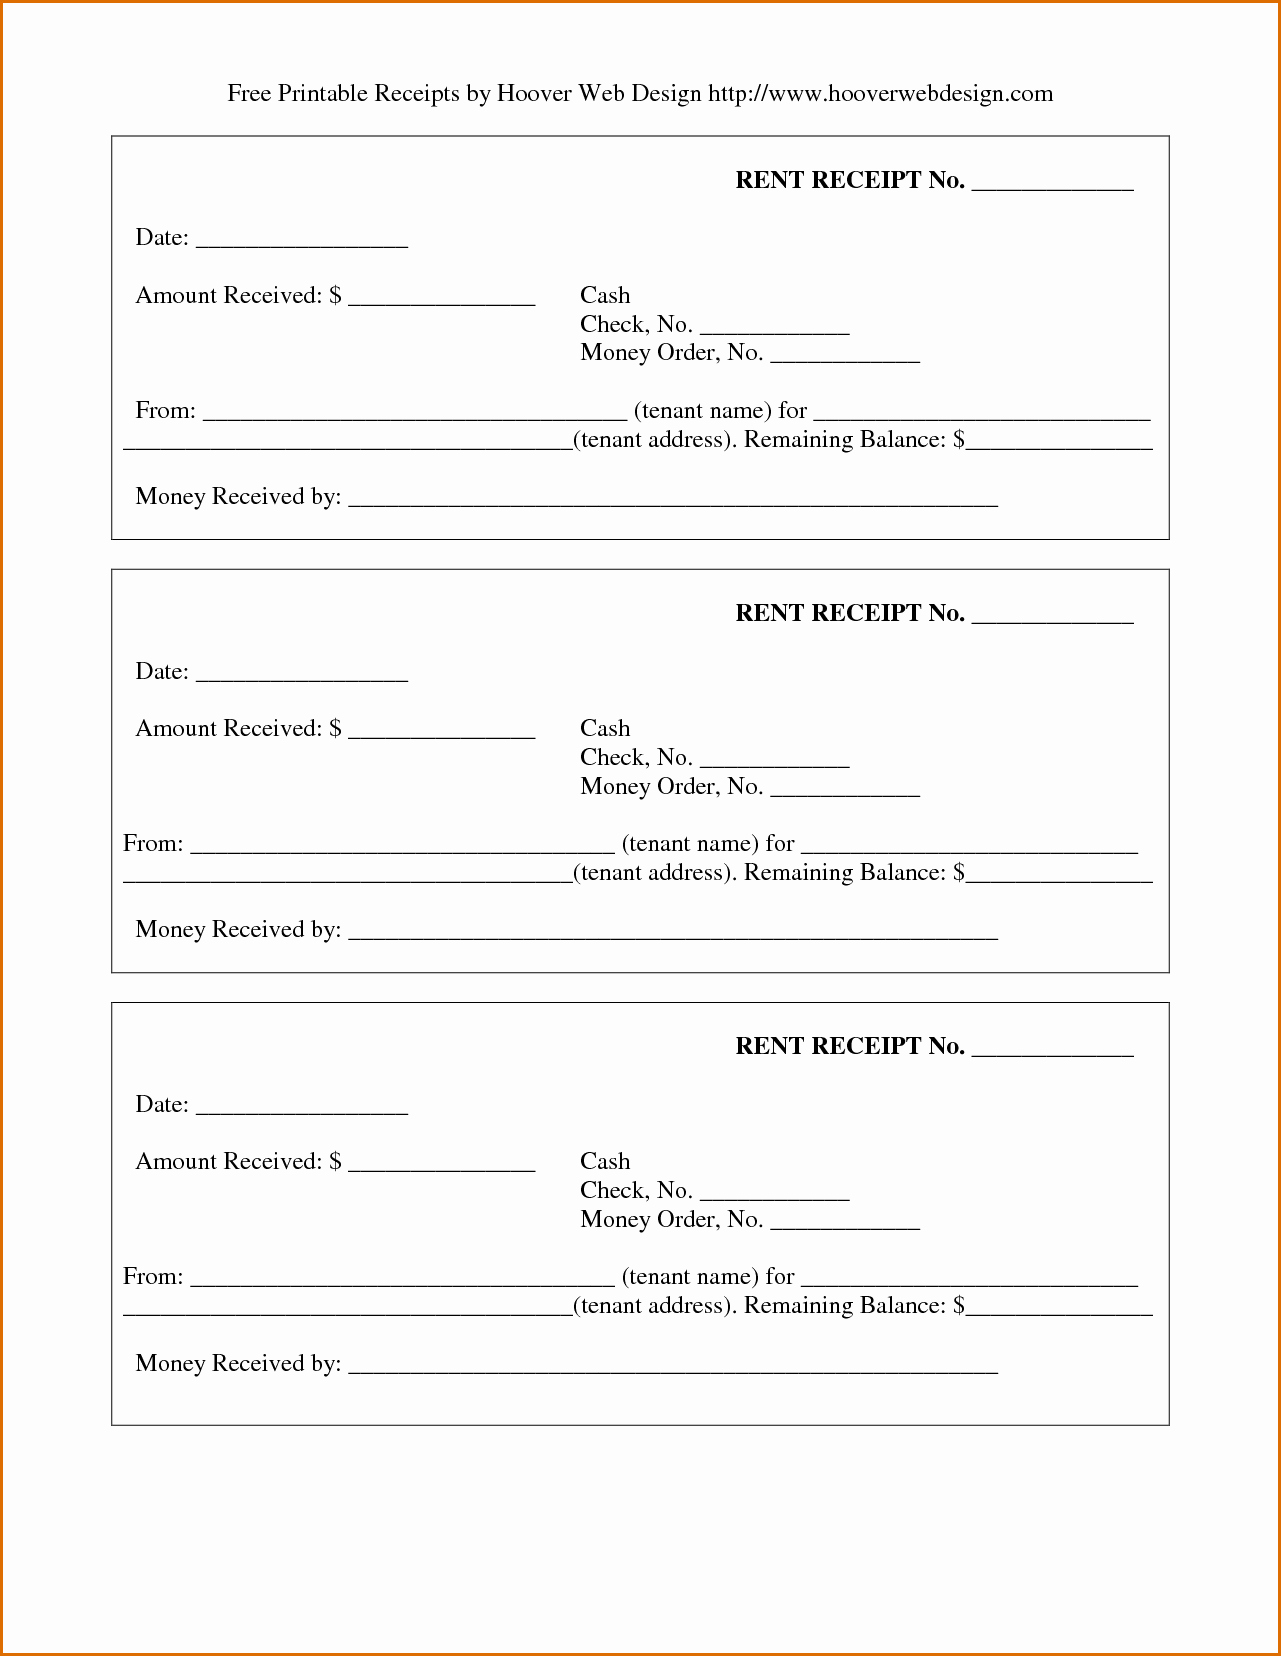 Printable Rent Receipt Template Elegant 4 Printable Rent Receipt